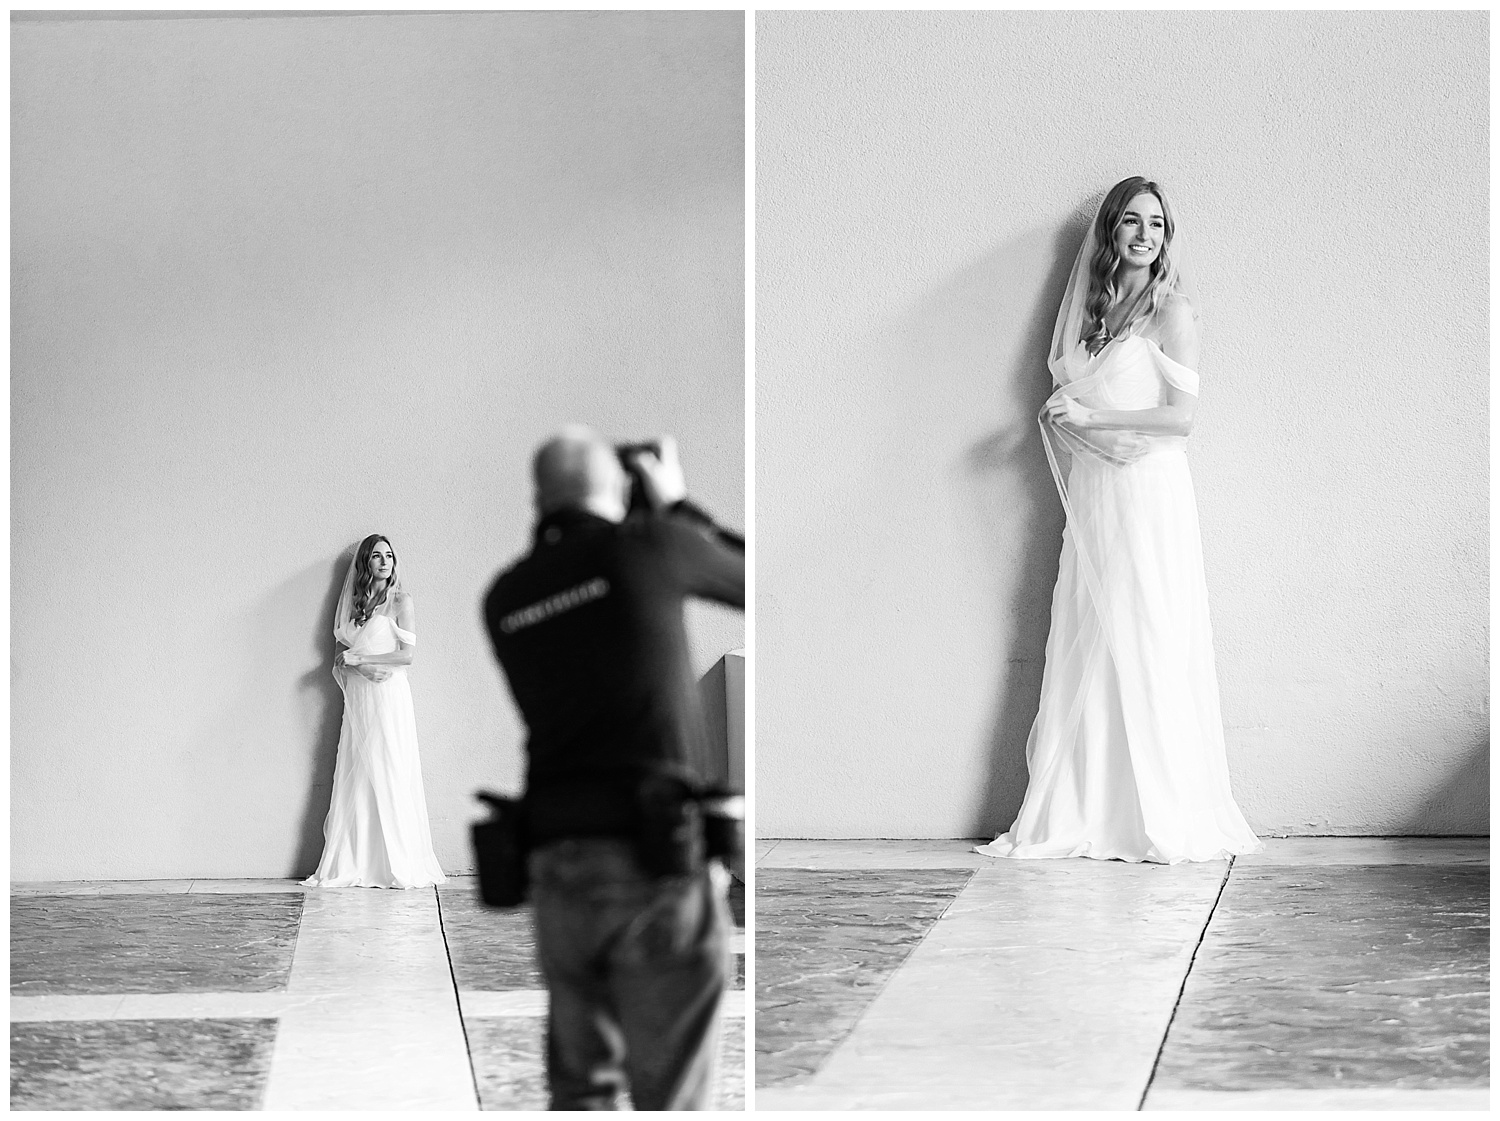 Scott Johnson Plus Class: The Art of Bride and Groom Portraiture.  Showing us how to find the right light, and use leading lines and symmetry to create visual interest.